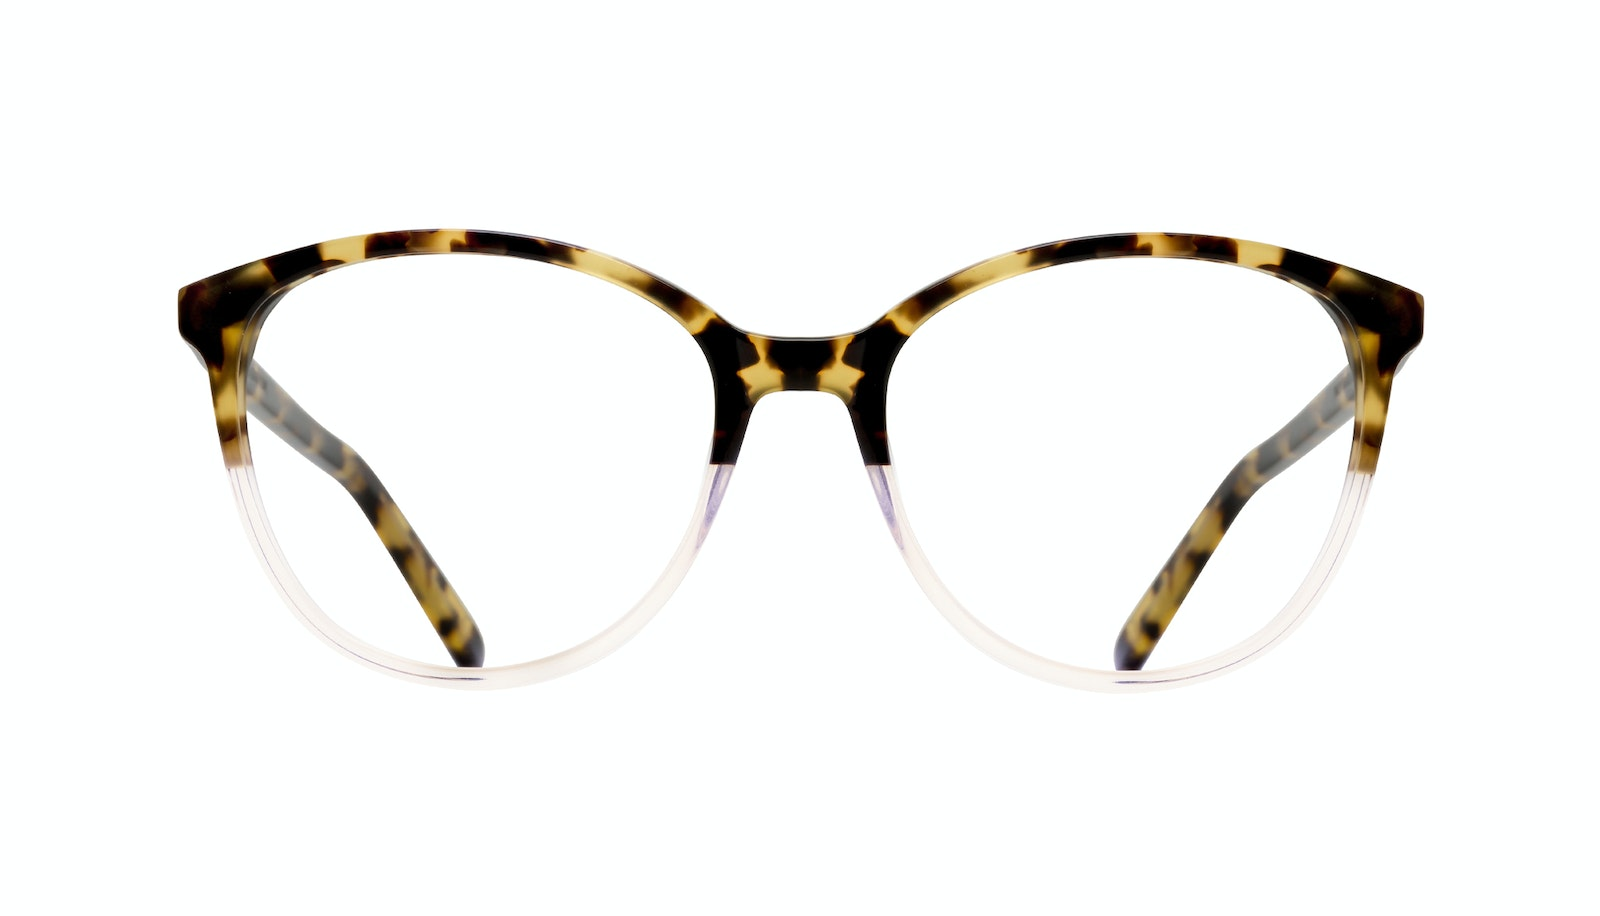 Affordable Fashion Glasses Cat Eye Eyeglasses Women Imagine Blond Tort